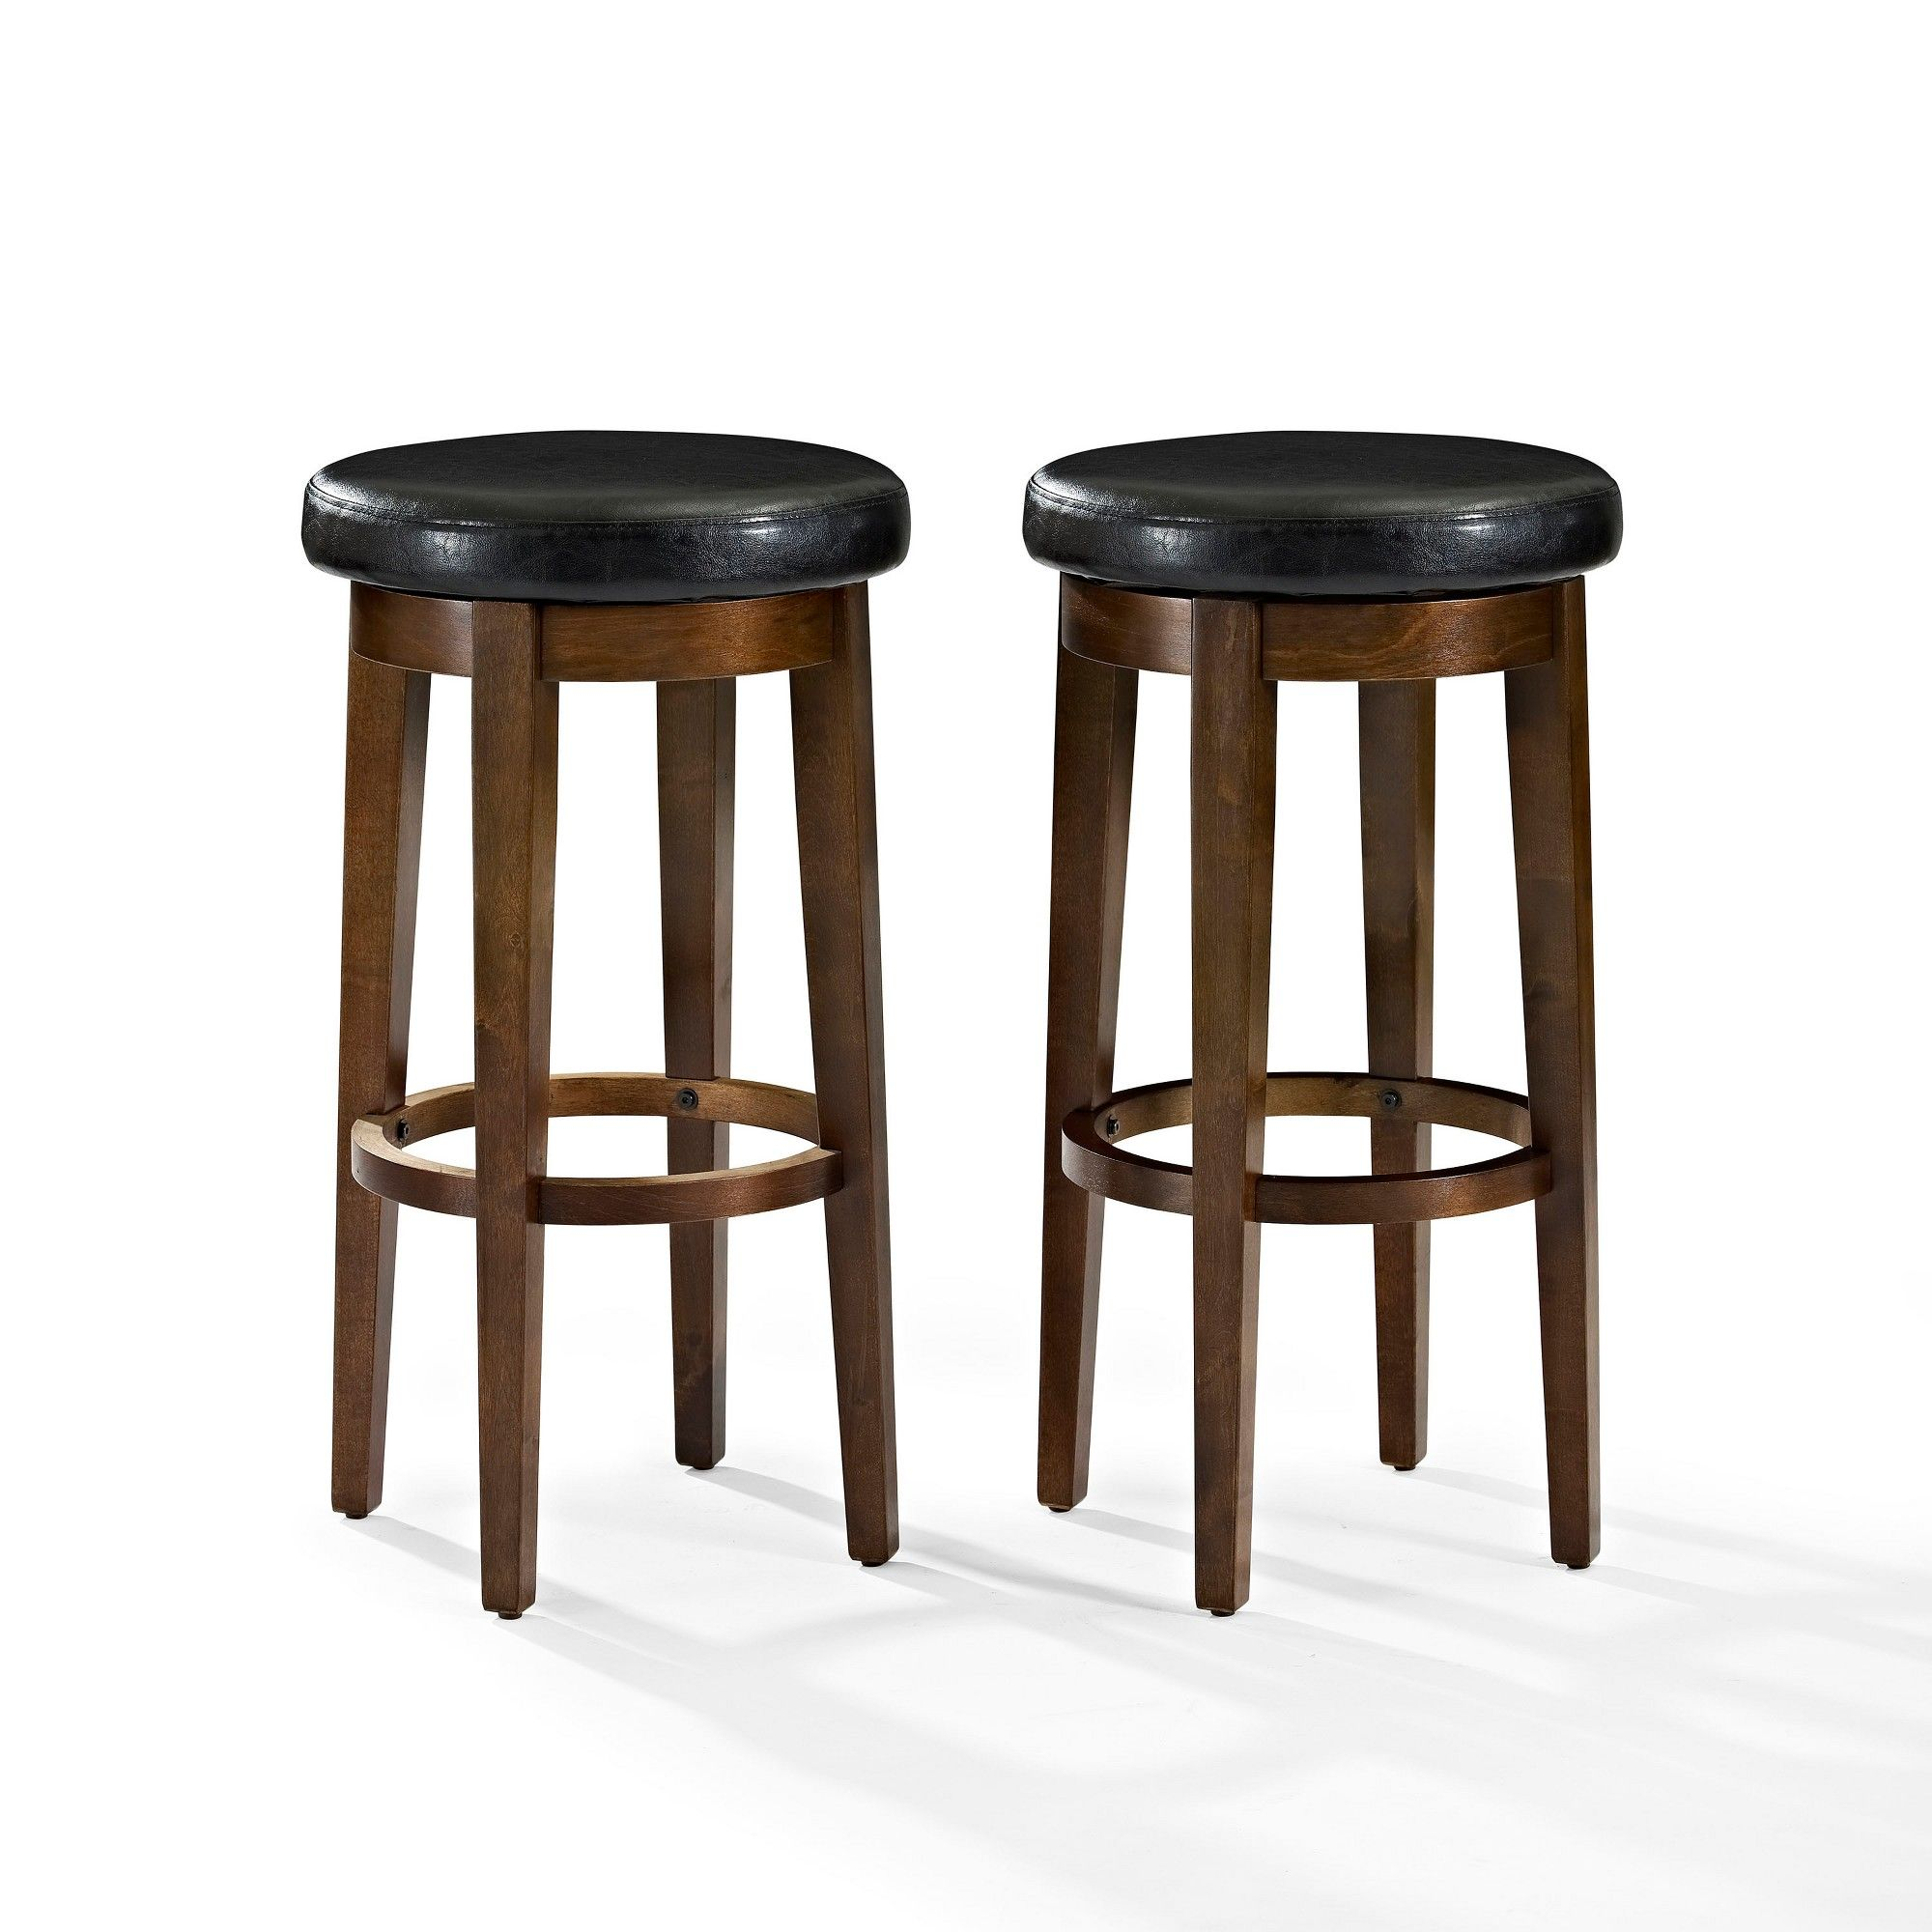 Mitchell Swivel Bar Stool Mahogany Brown Black Set Of 2 Crosley Swivel Bar Stools Swivel Counter Stools Bar Stools